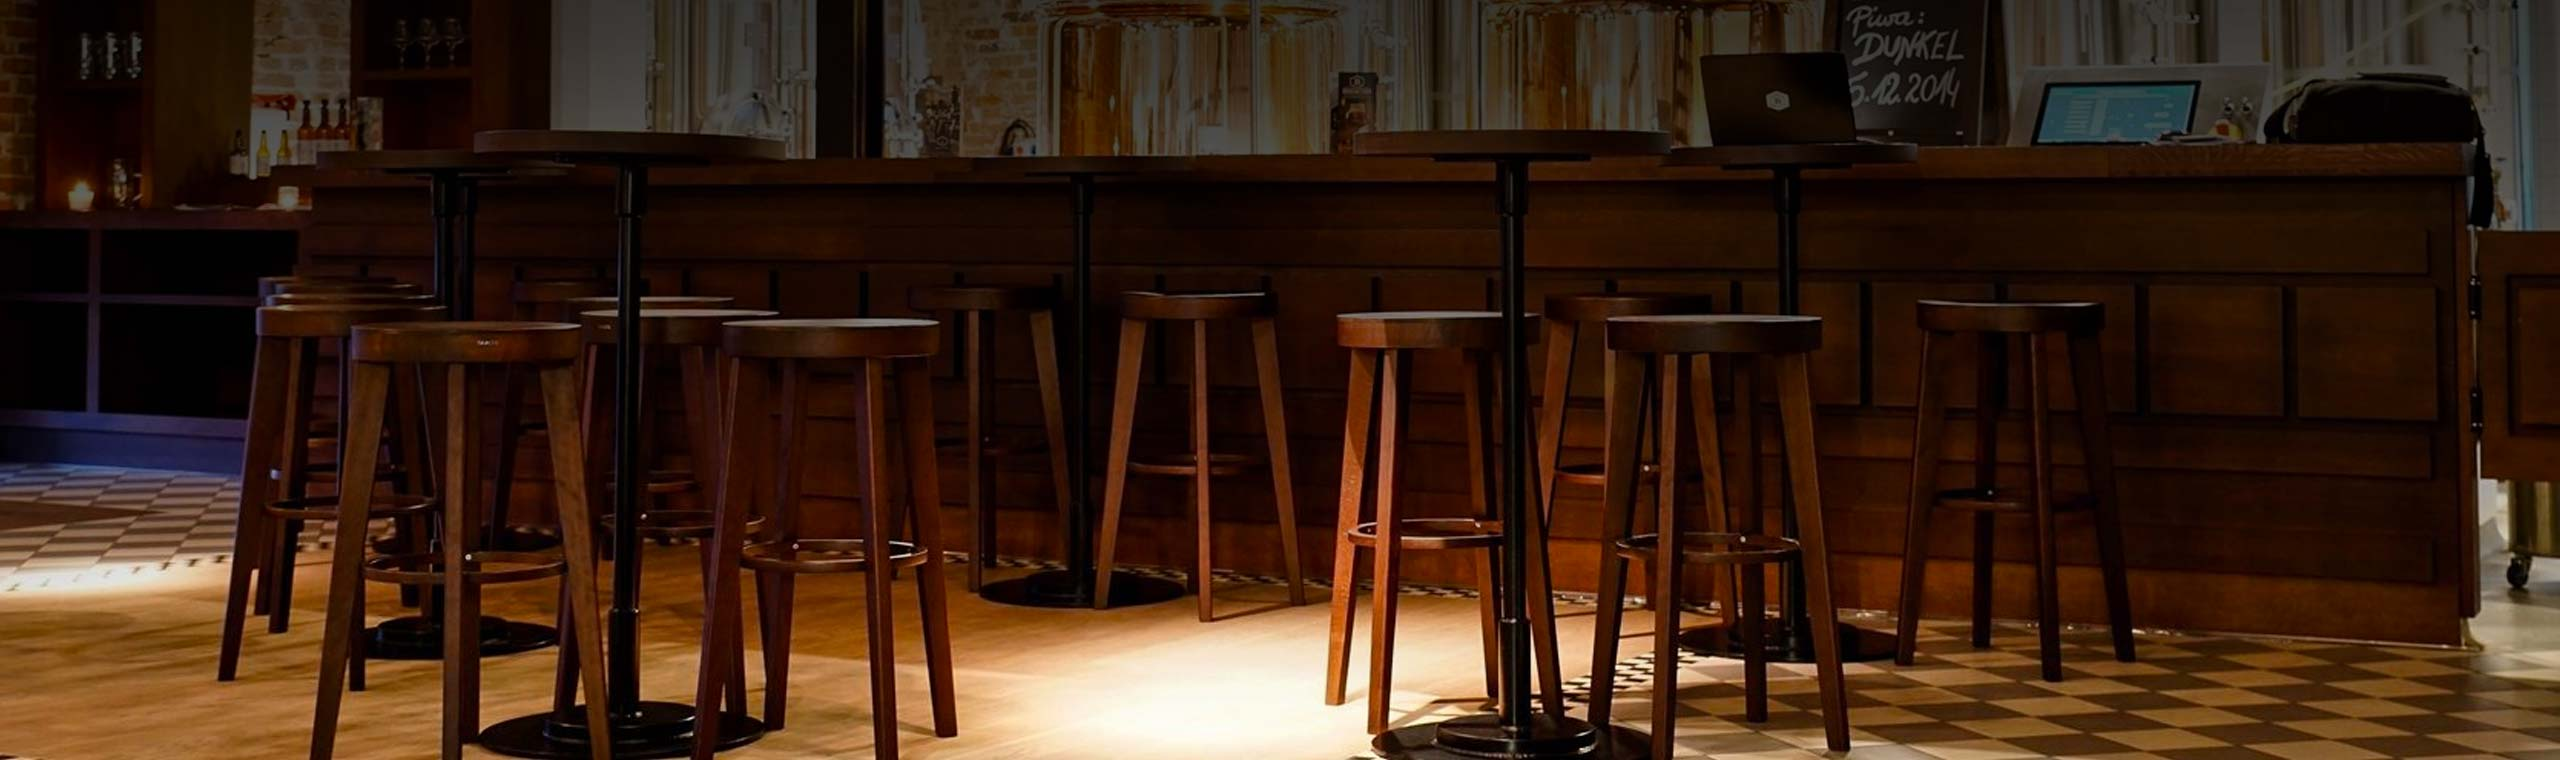 Hospitality Pub Furniture